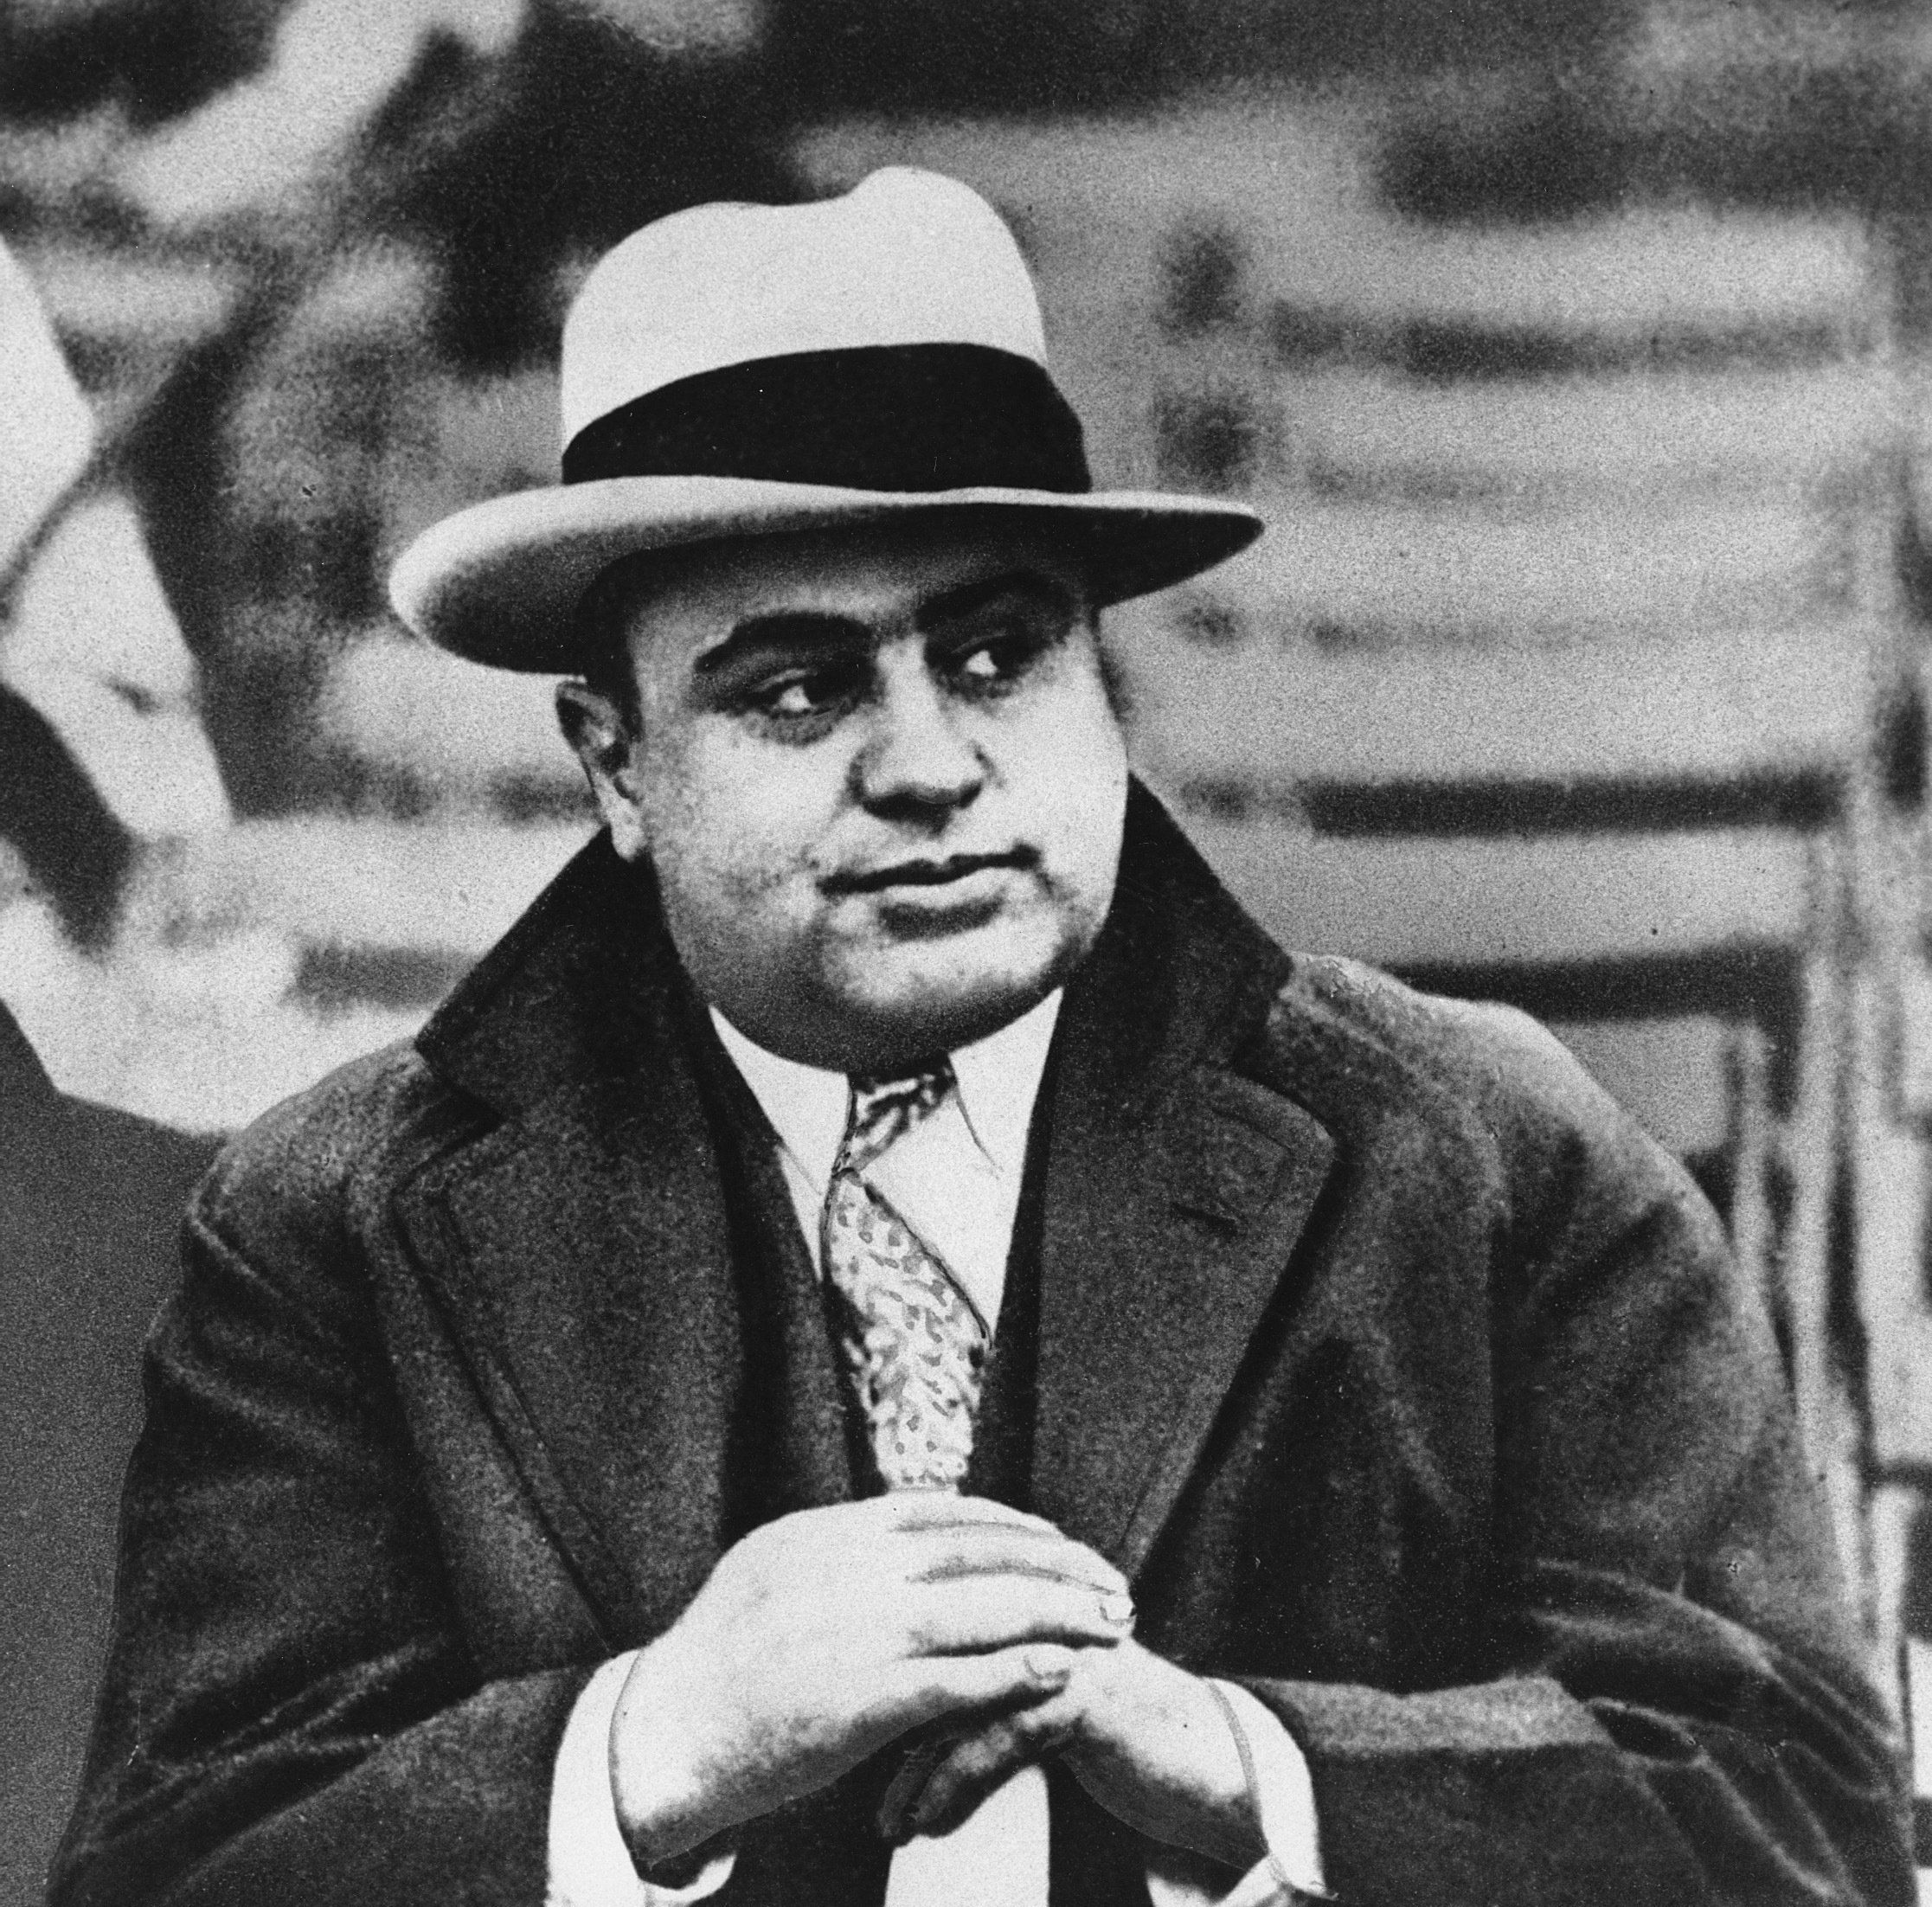 "FILE -  This Jan. 19, 1931, file photo shows Chicago mobster Al Capone at a football game. The way President Donald Trump sees it, Capone, the most famous gangster in American history, got off easy compared to Trump's former campaign chairman Paul Manafort. On Wednesday, Aug. 1, 2018, as Manafort stands trial for charges that include tax evasion, the same crime that landed Capone in Alcatraz, the president took to twitter to complain that Manafort is being treated far harsher than ""Public Enemy Number One."" ((AP File Photo)"